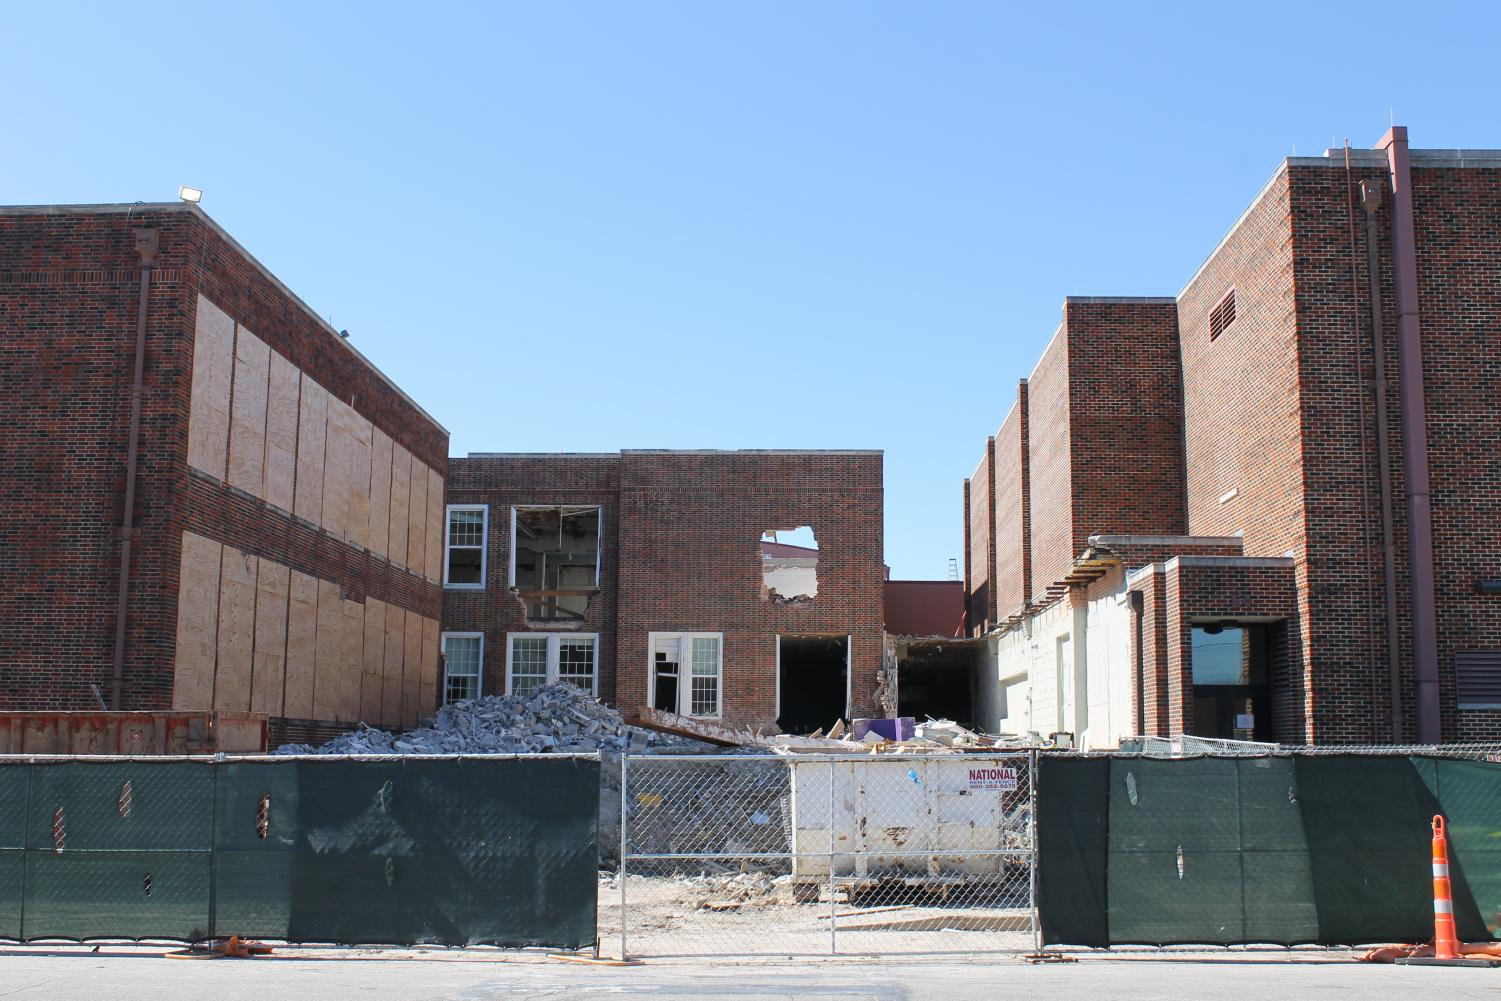 Ongoing construction resulted in the demolition of the iconic arches.